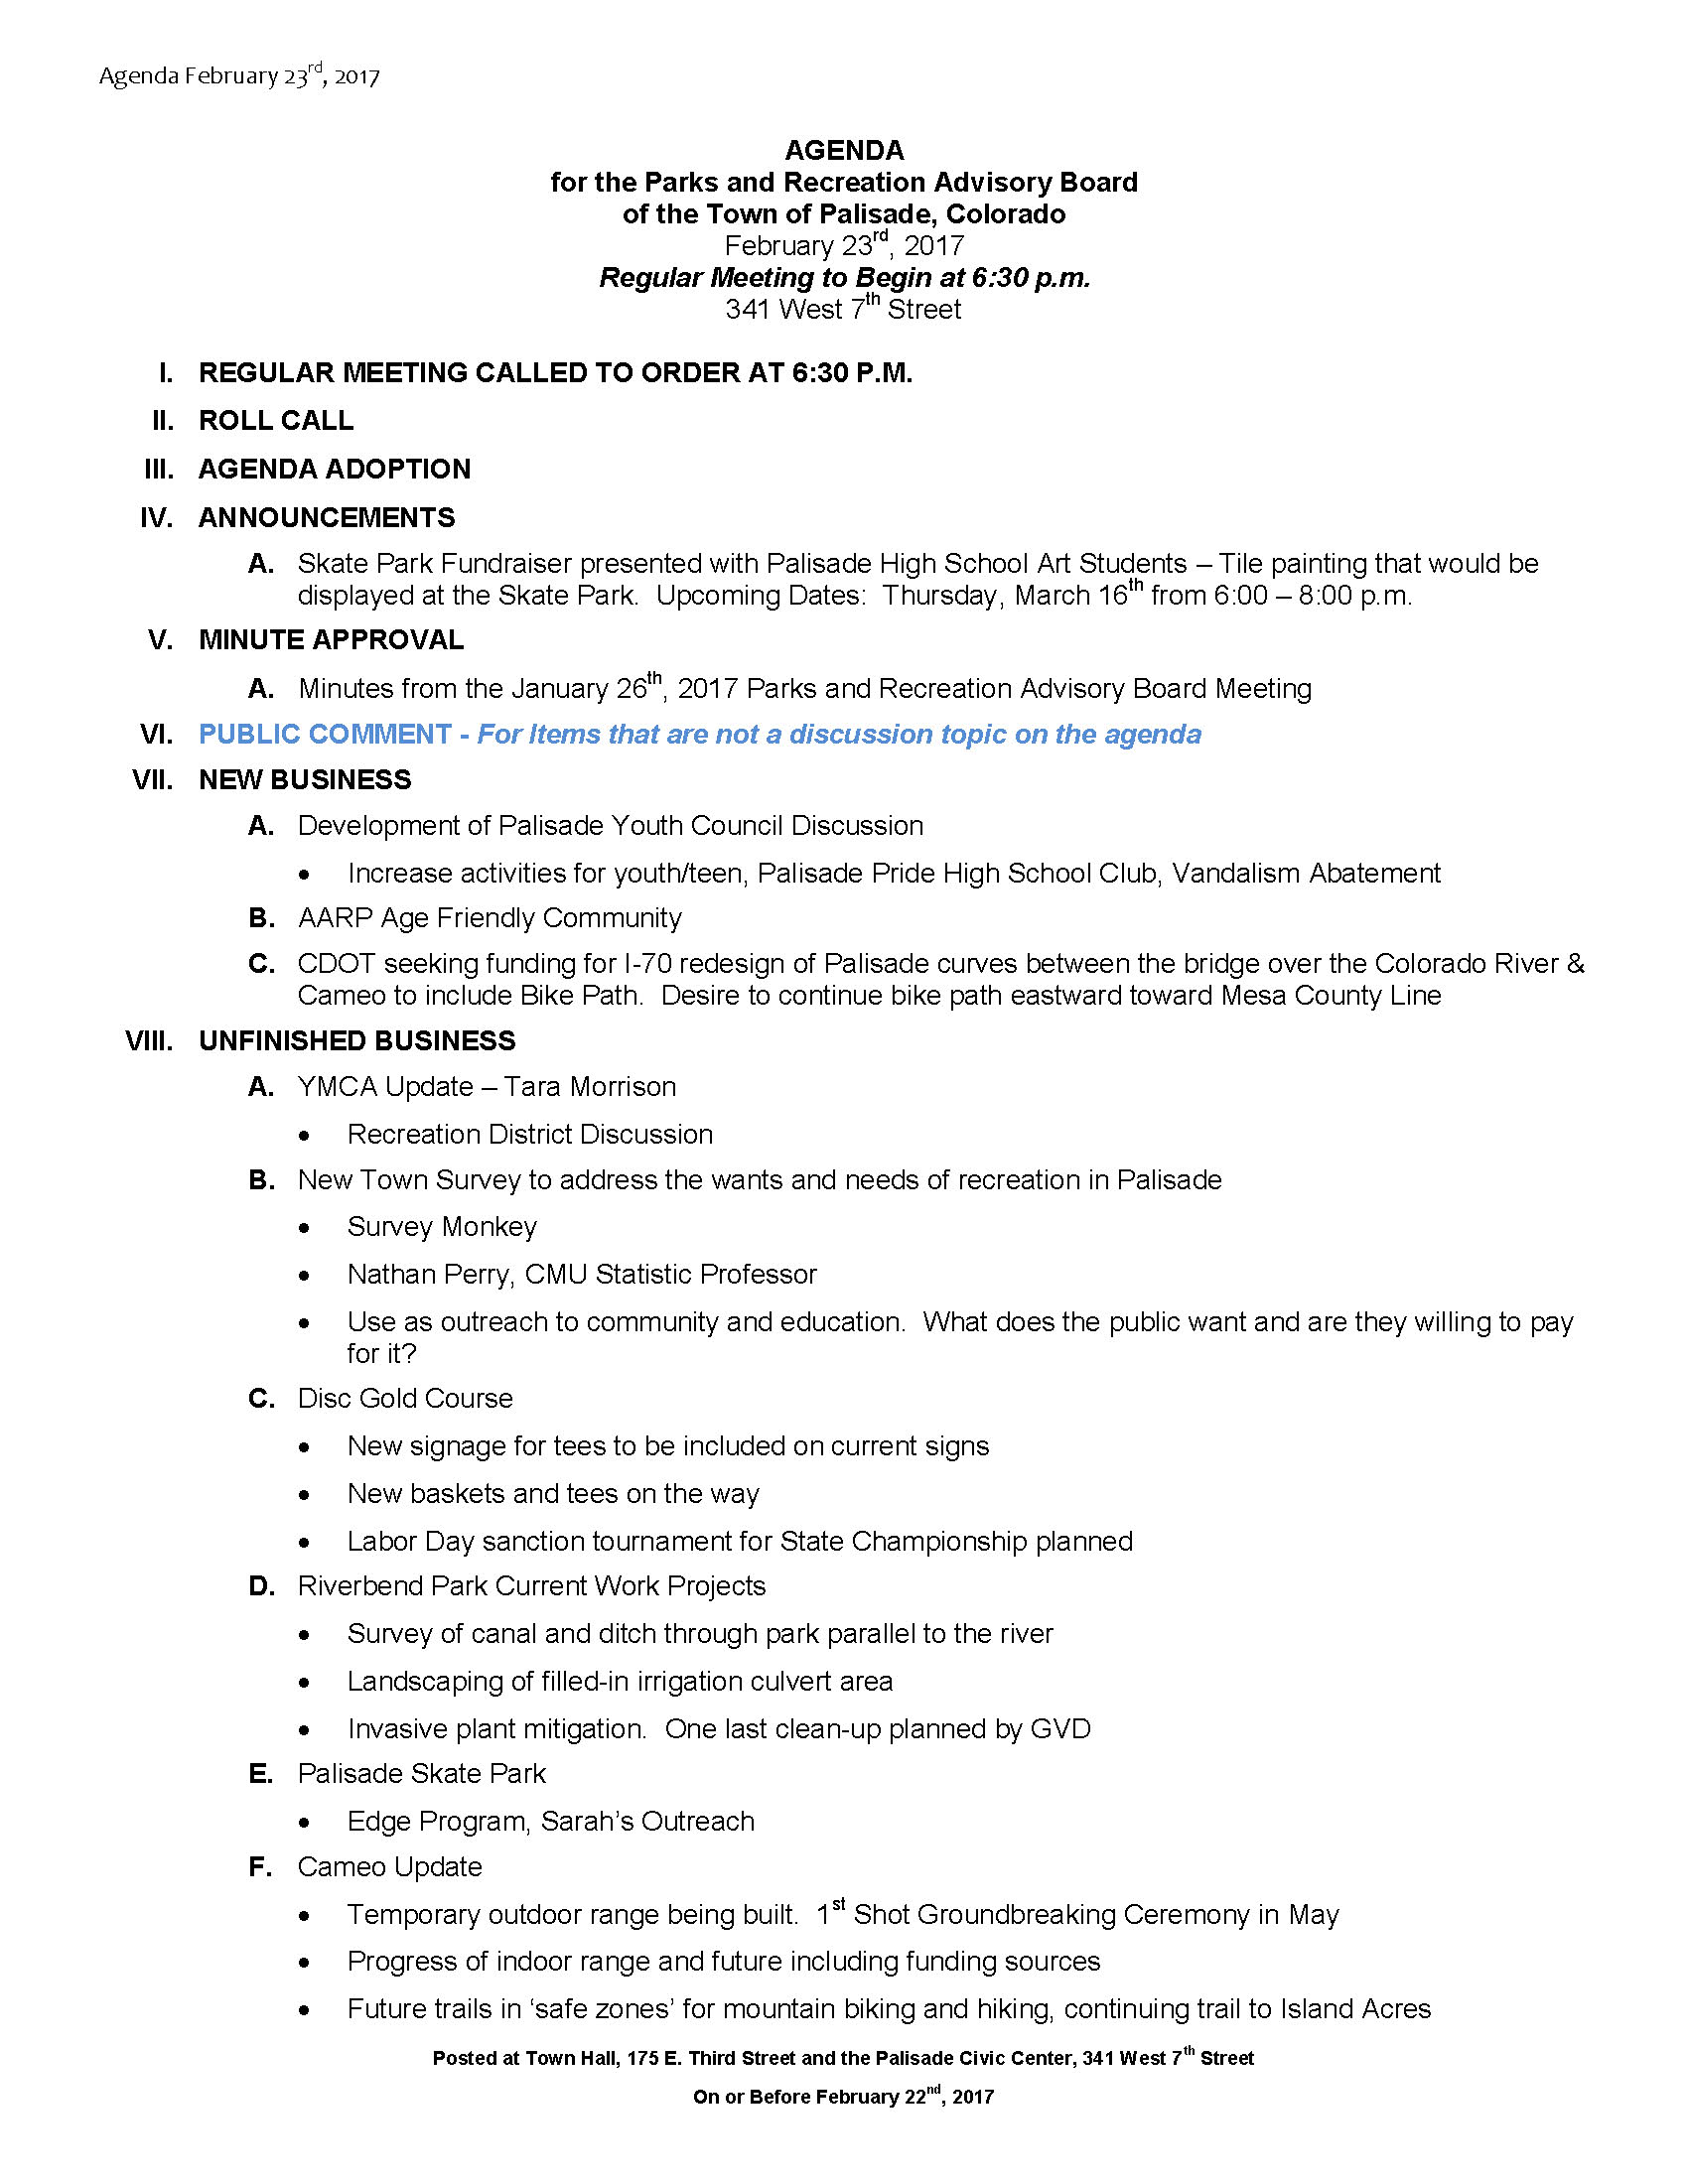 February 23rd 2017 PRAC Meeting Agenda Page 1